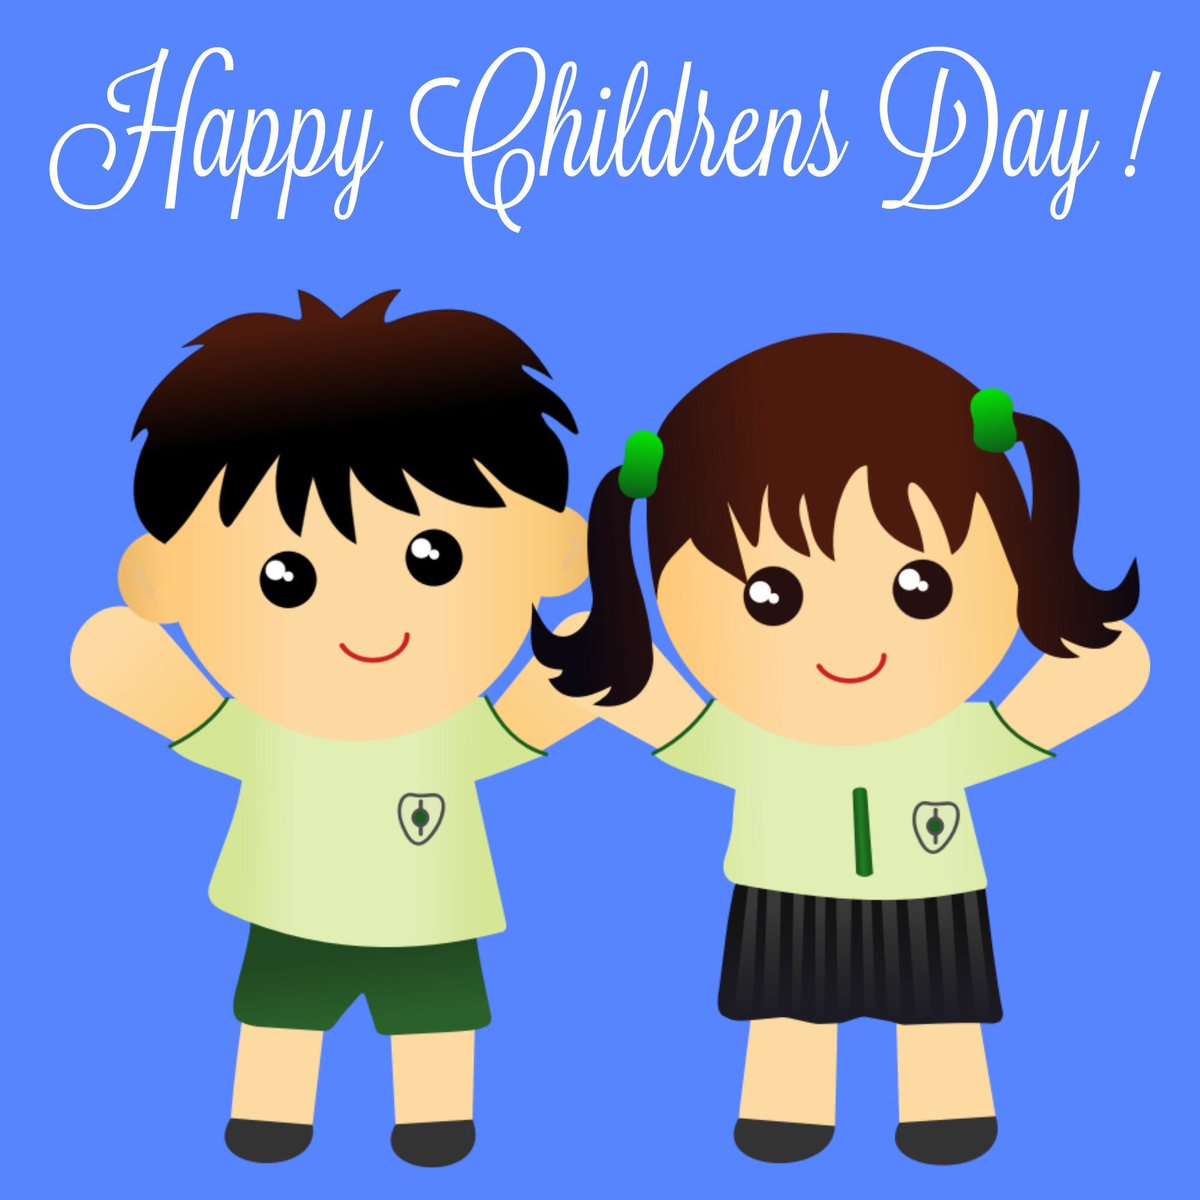 Childrens Day : IMAGES, GIF, ANIMATED GIF, WALLPAPER, STICKER FOR WHATSAPP & FACEBOOK